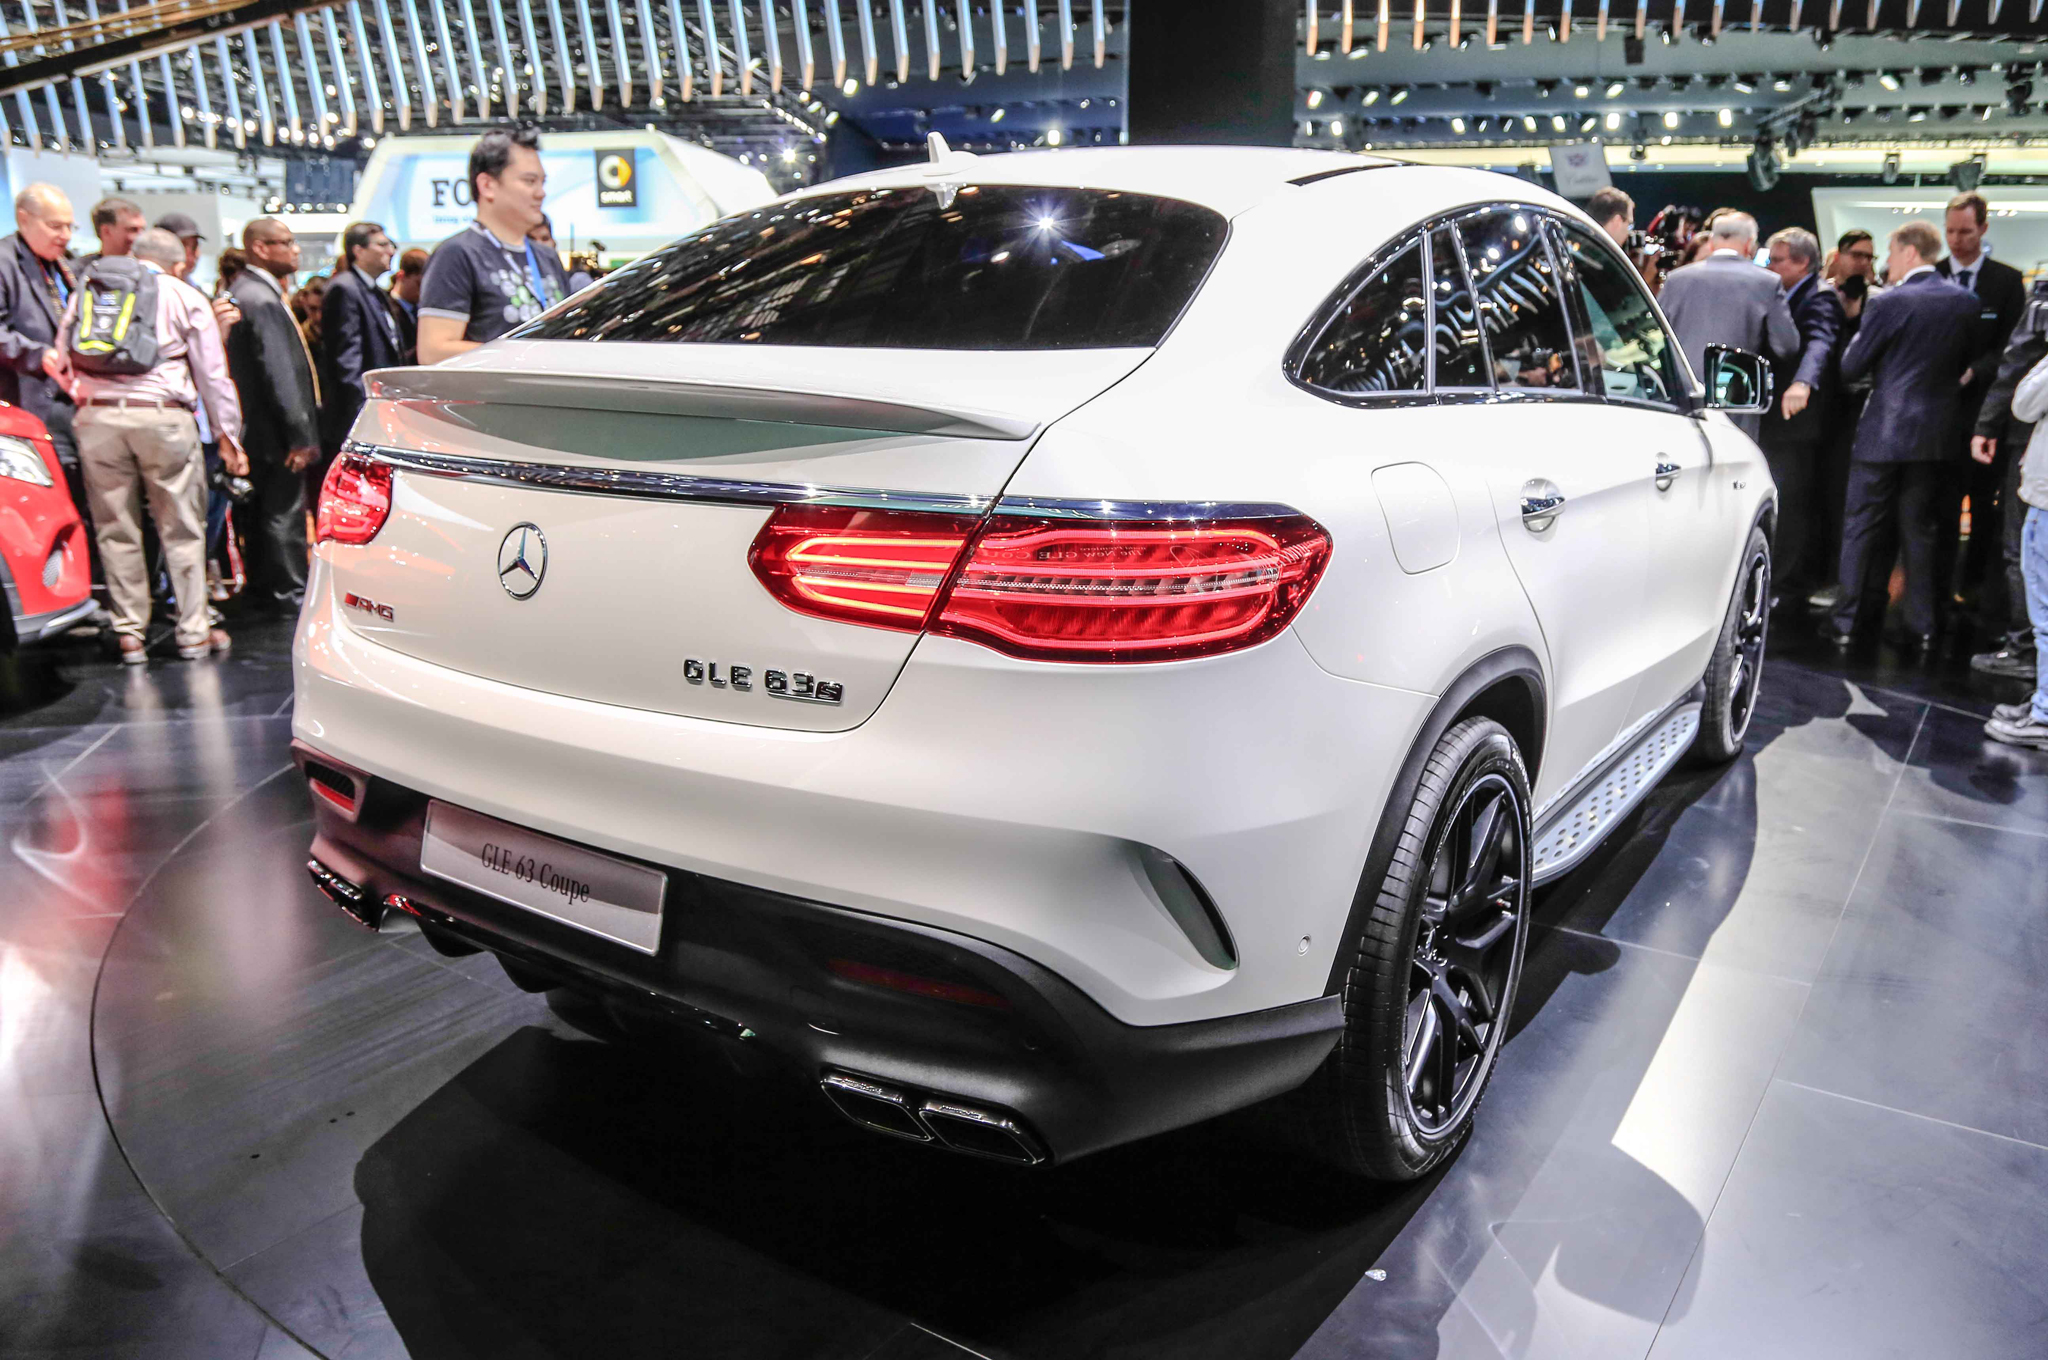 2016 Mercedes Benz AMG GLE63s Coupe Rear Side